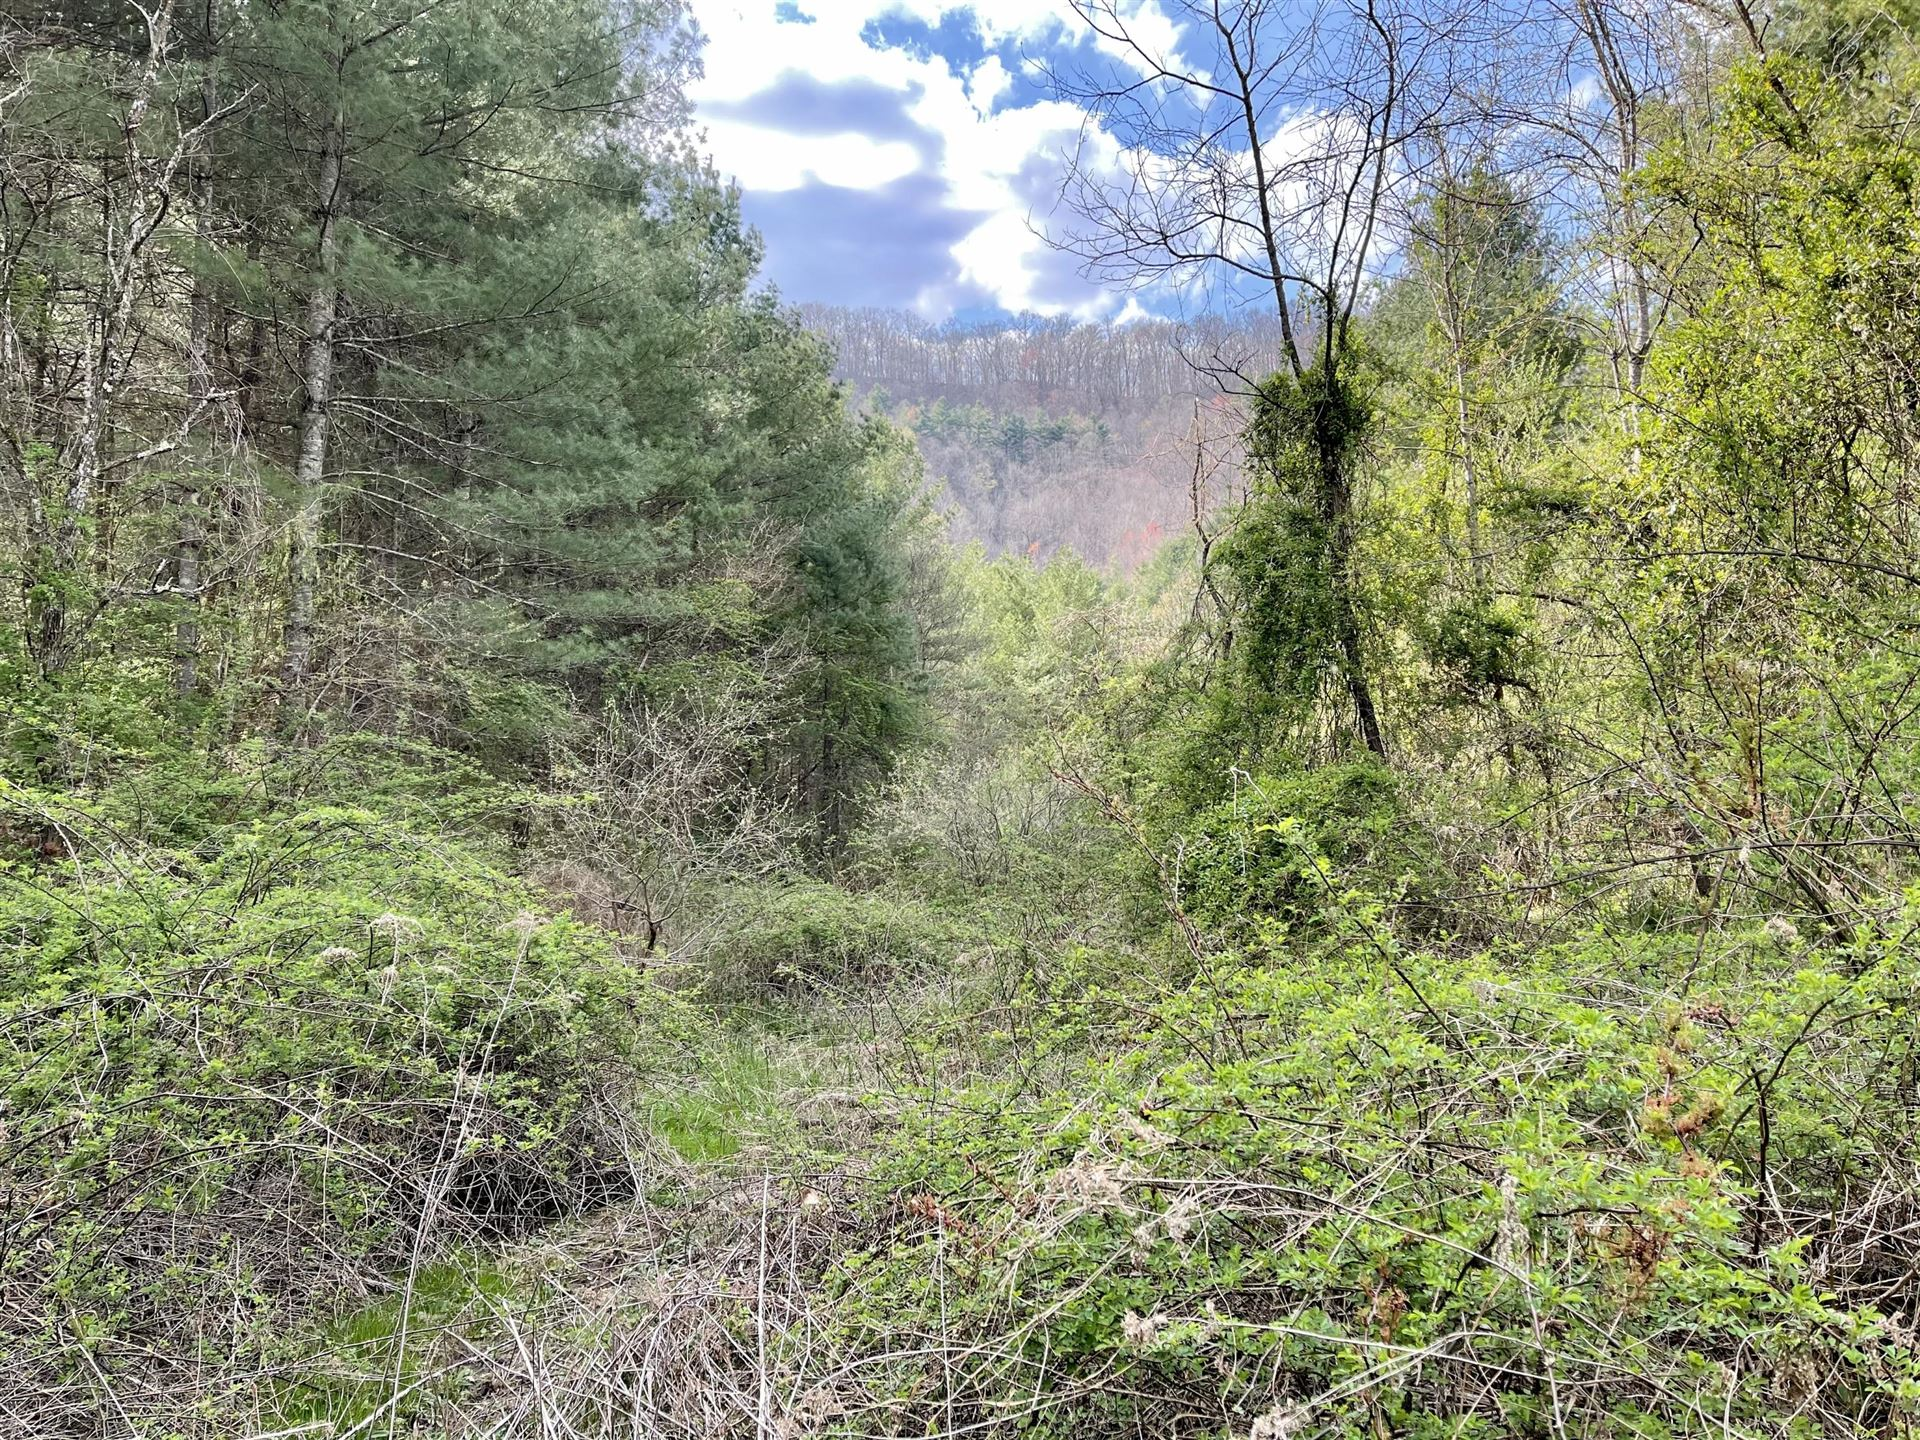 Photo of Tbd Orby Cantrell Highway, Wise, VA 24293 (MLS # 9920902)